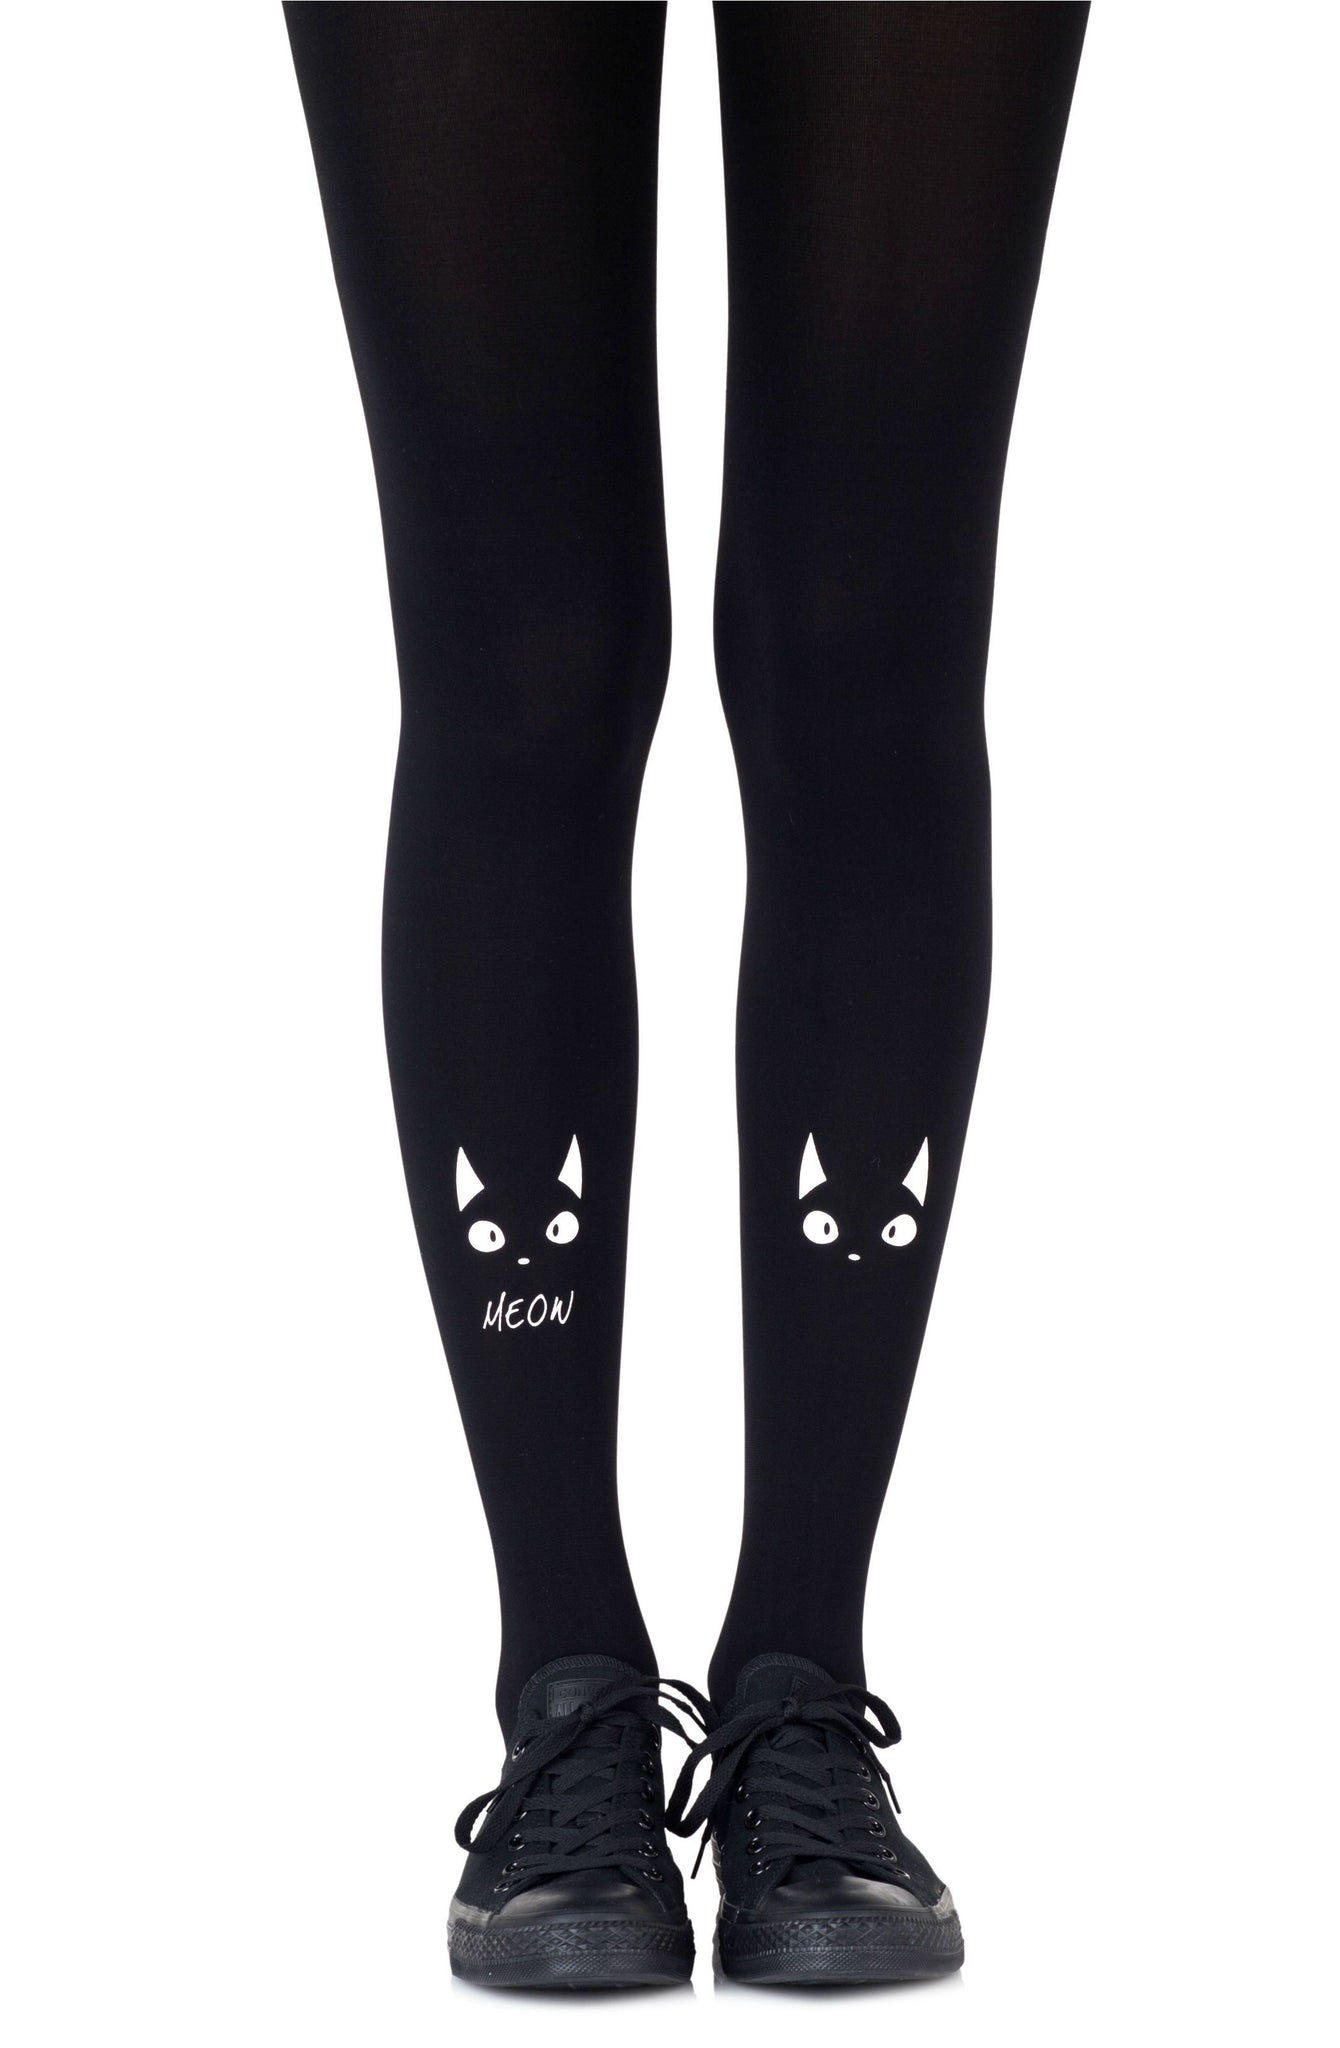 TIGHTS - BLACK/WHITE - ZOHARA NICE KITTY - AvecEnvie